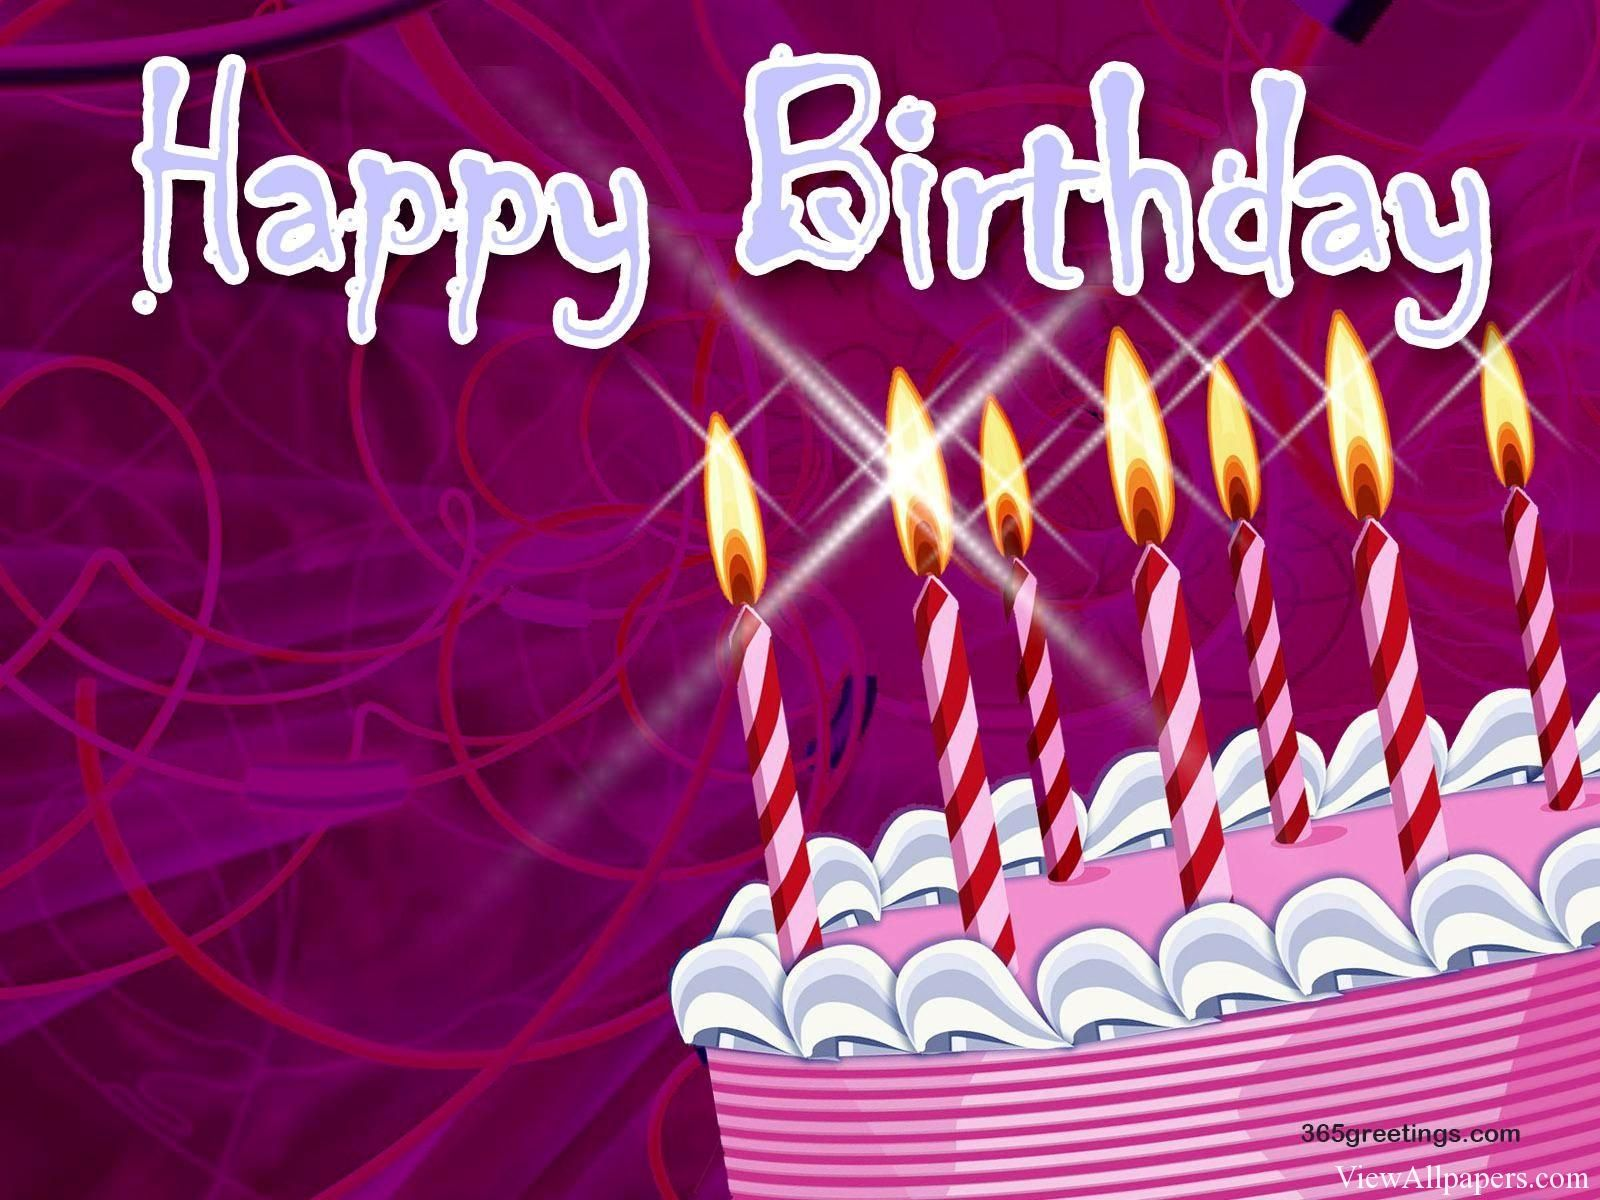 Happy Birthday Wallpapers Cards Pinterest